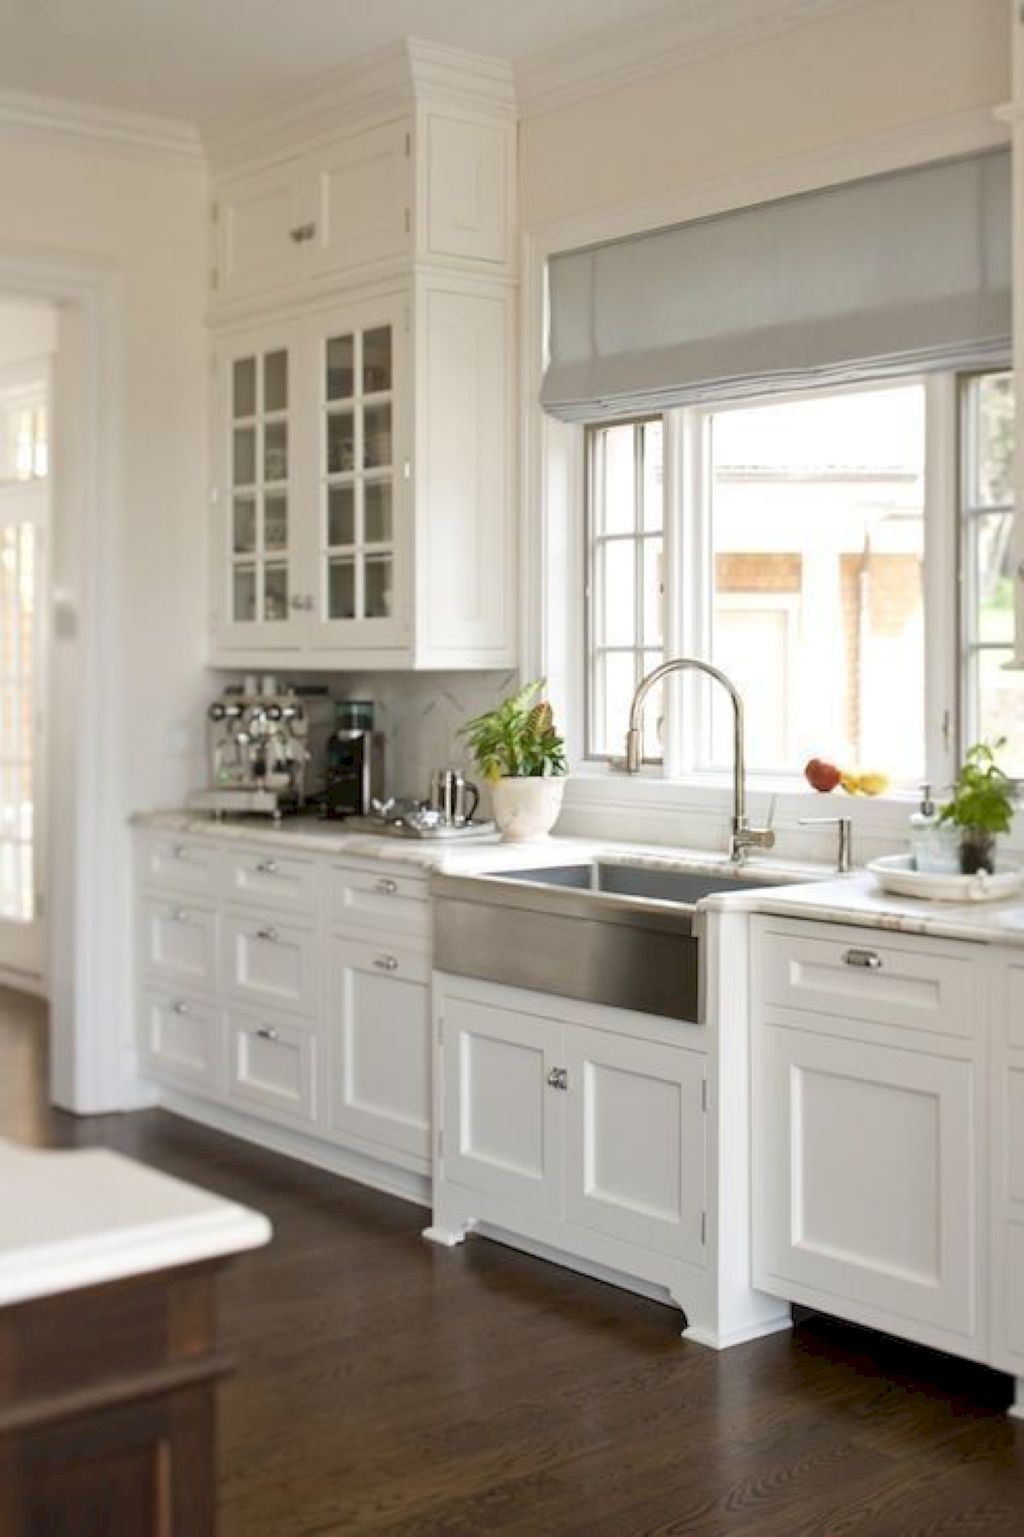 Cool 55 Luxury White Kitchen Cabinets Design Ideas Https://bellezaroom.com/